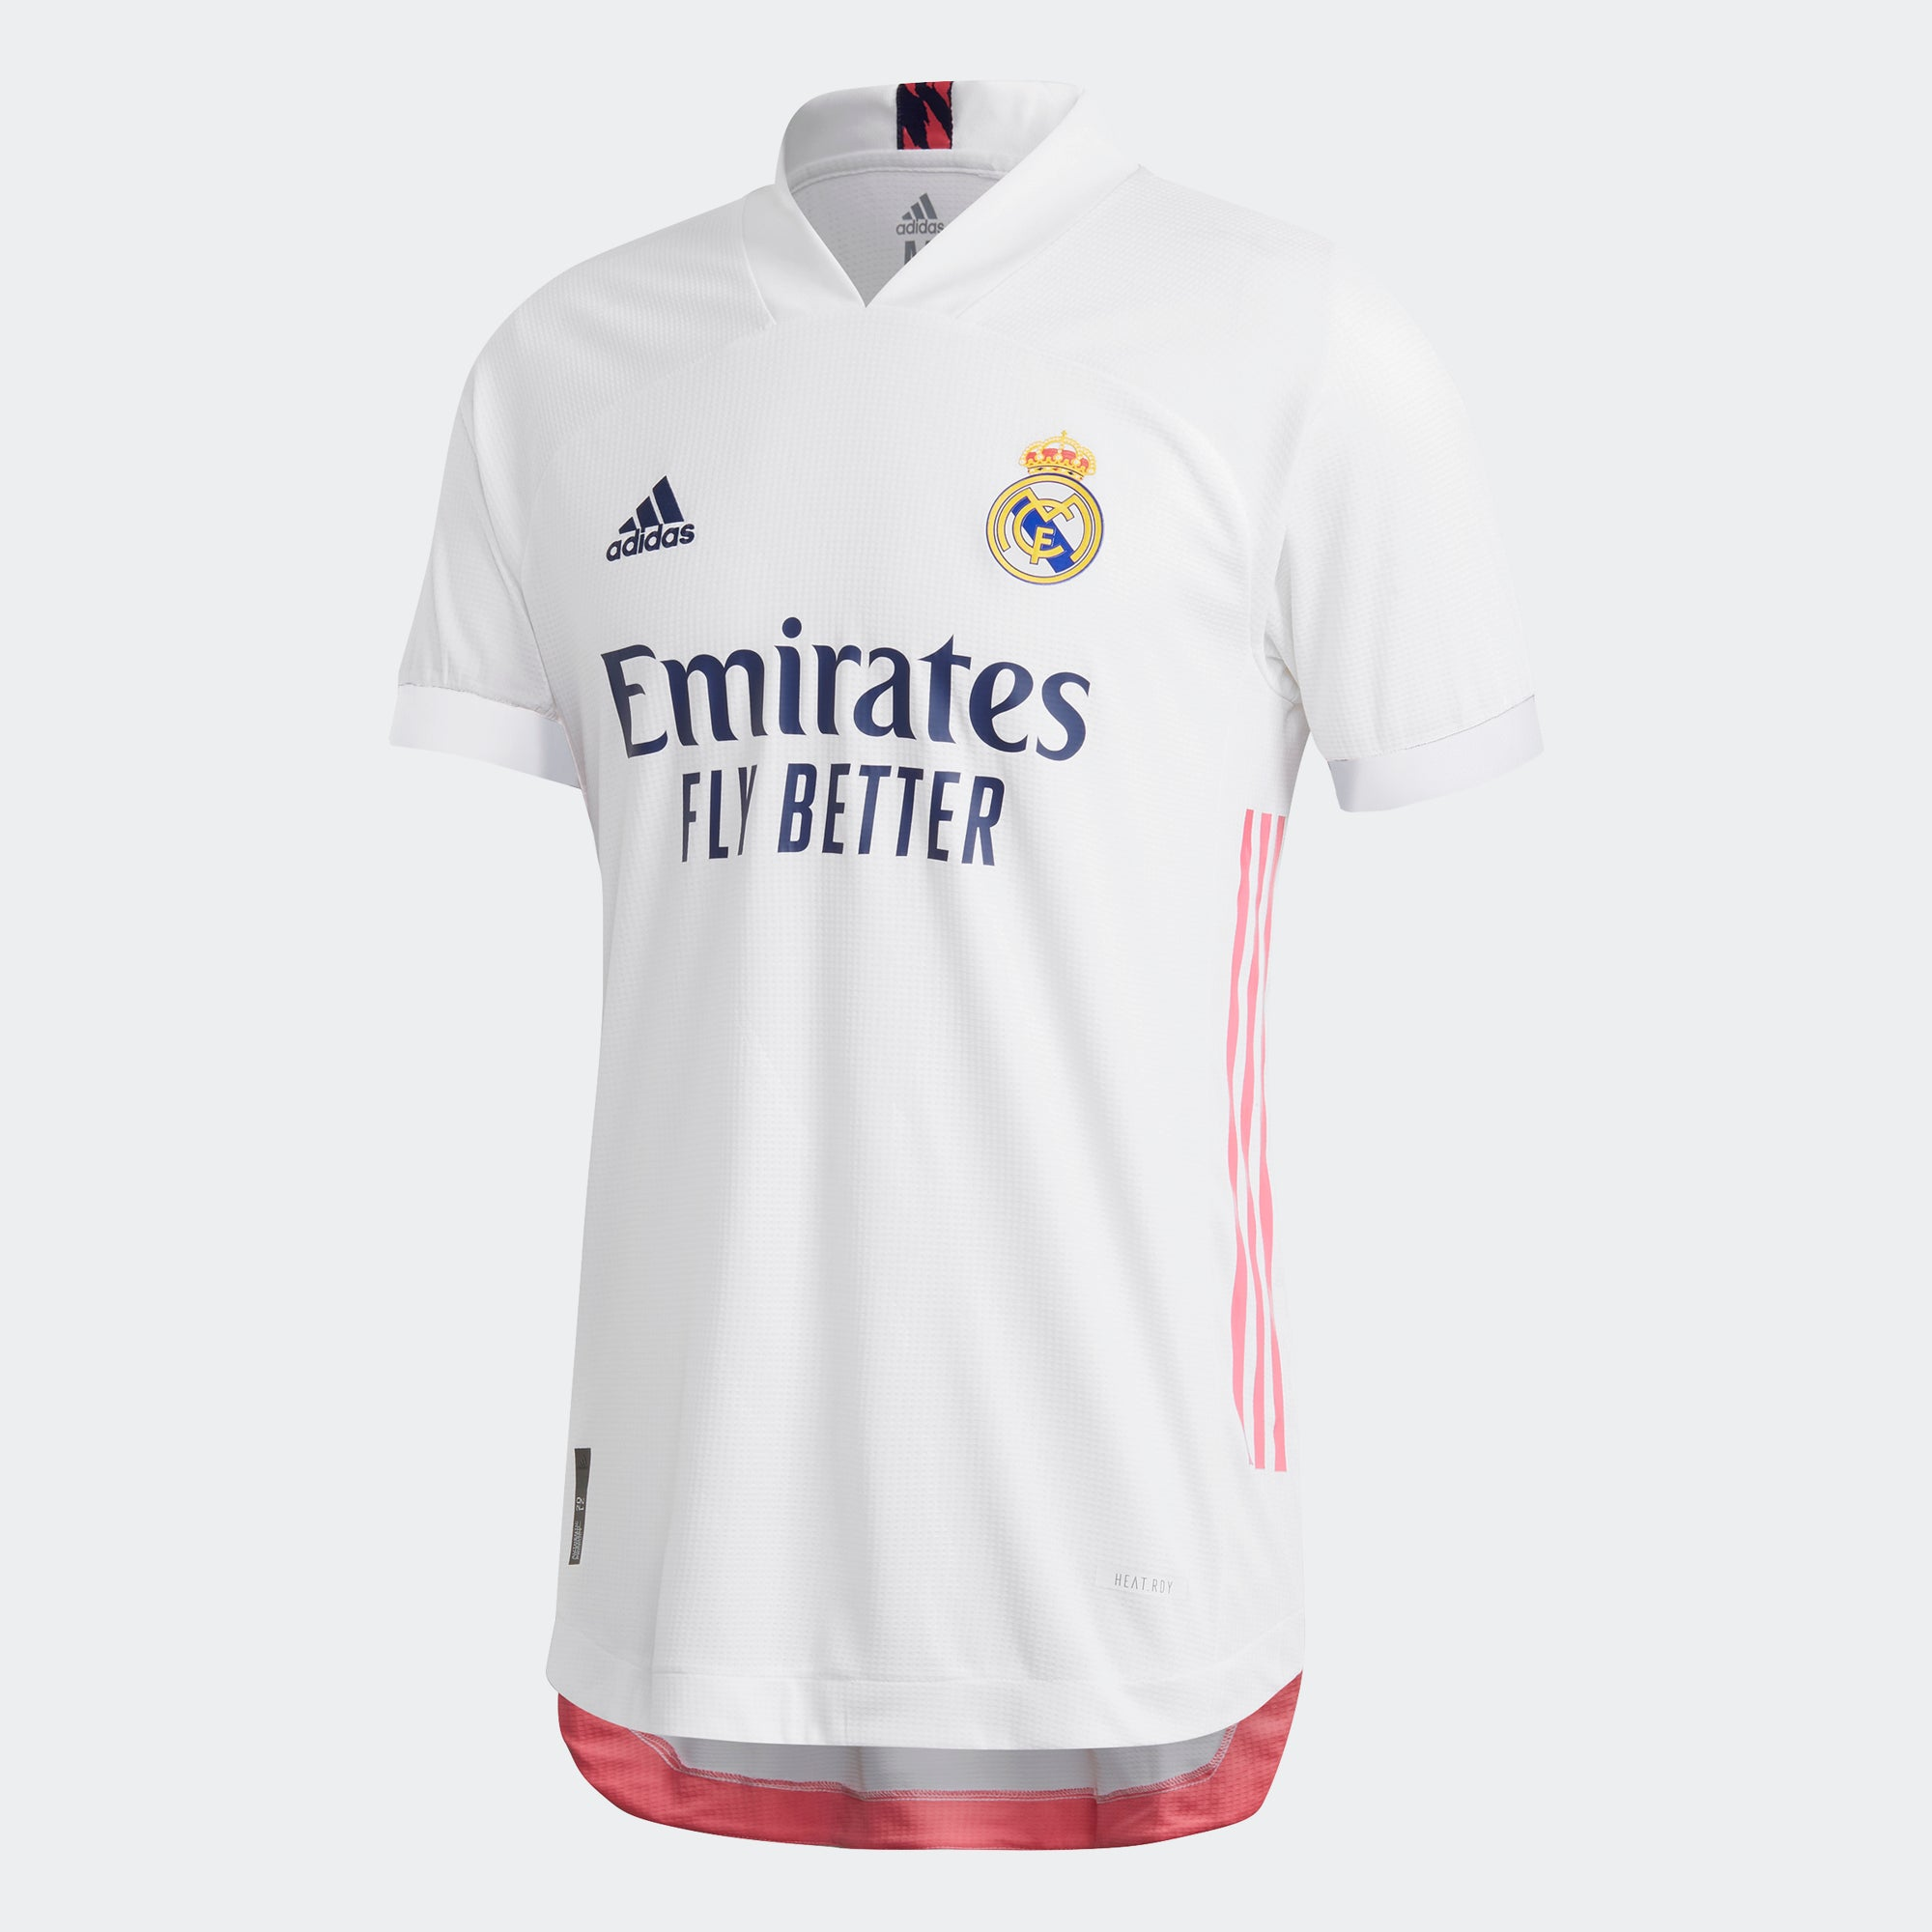 Real Madrid Authentic Home Short Sleeve Jersey 20/21 Men's